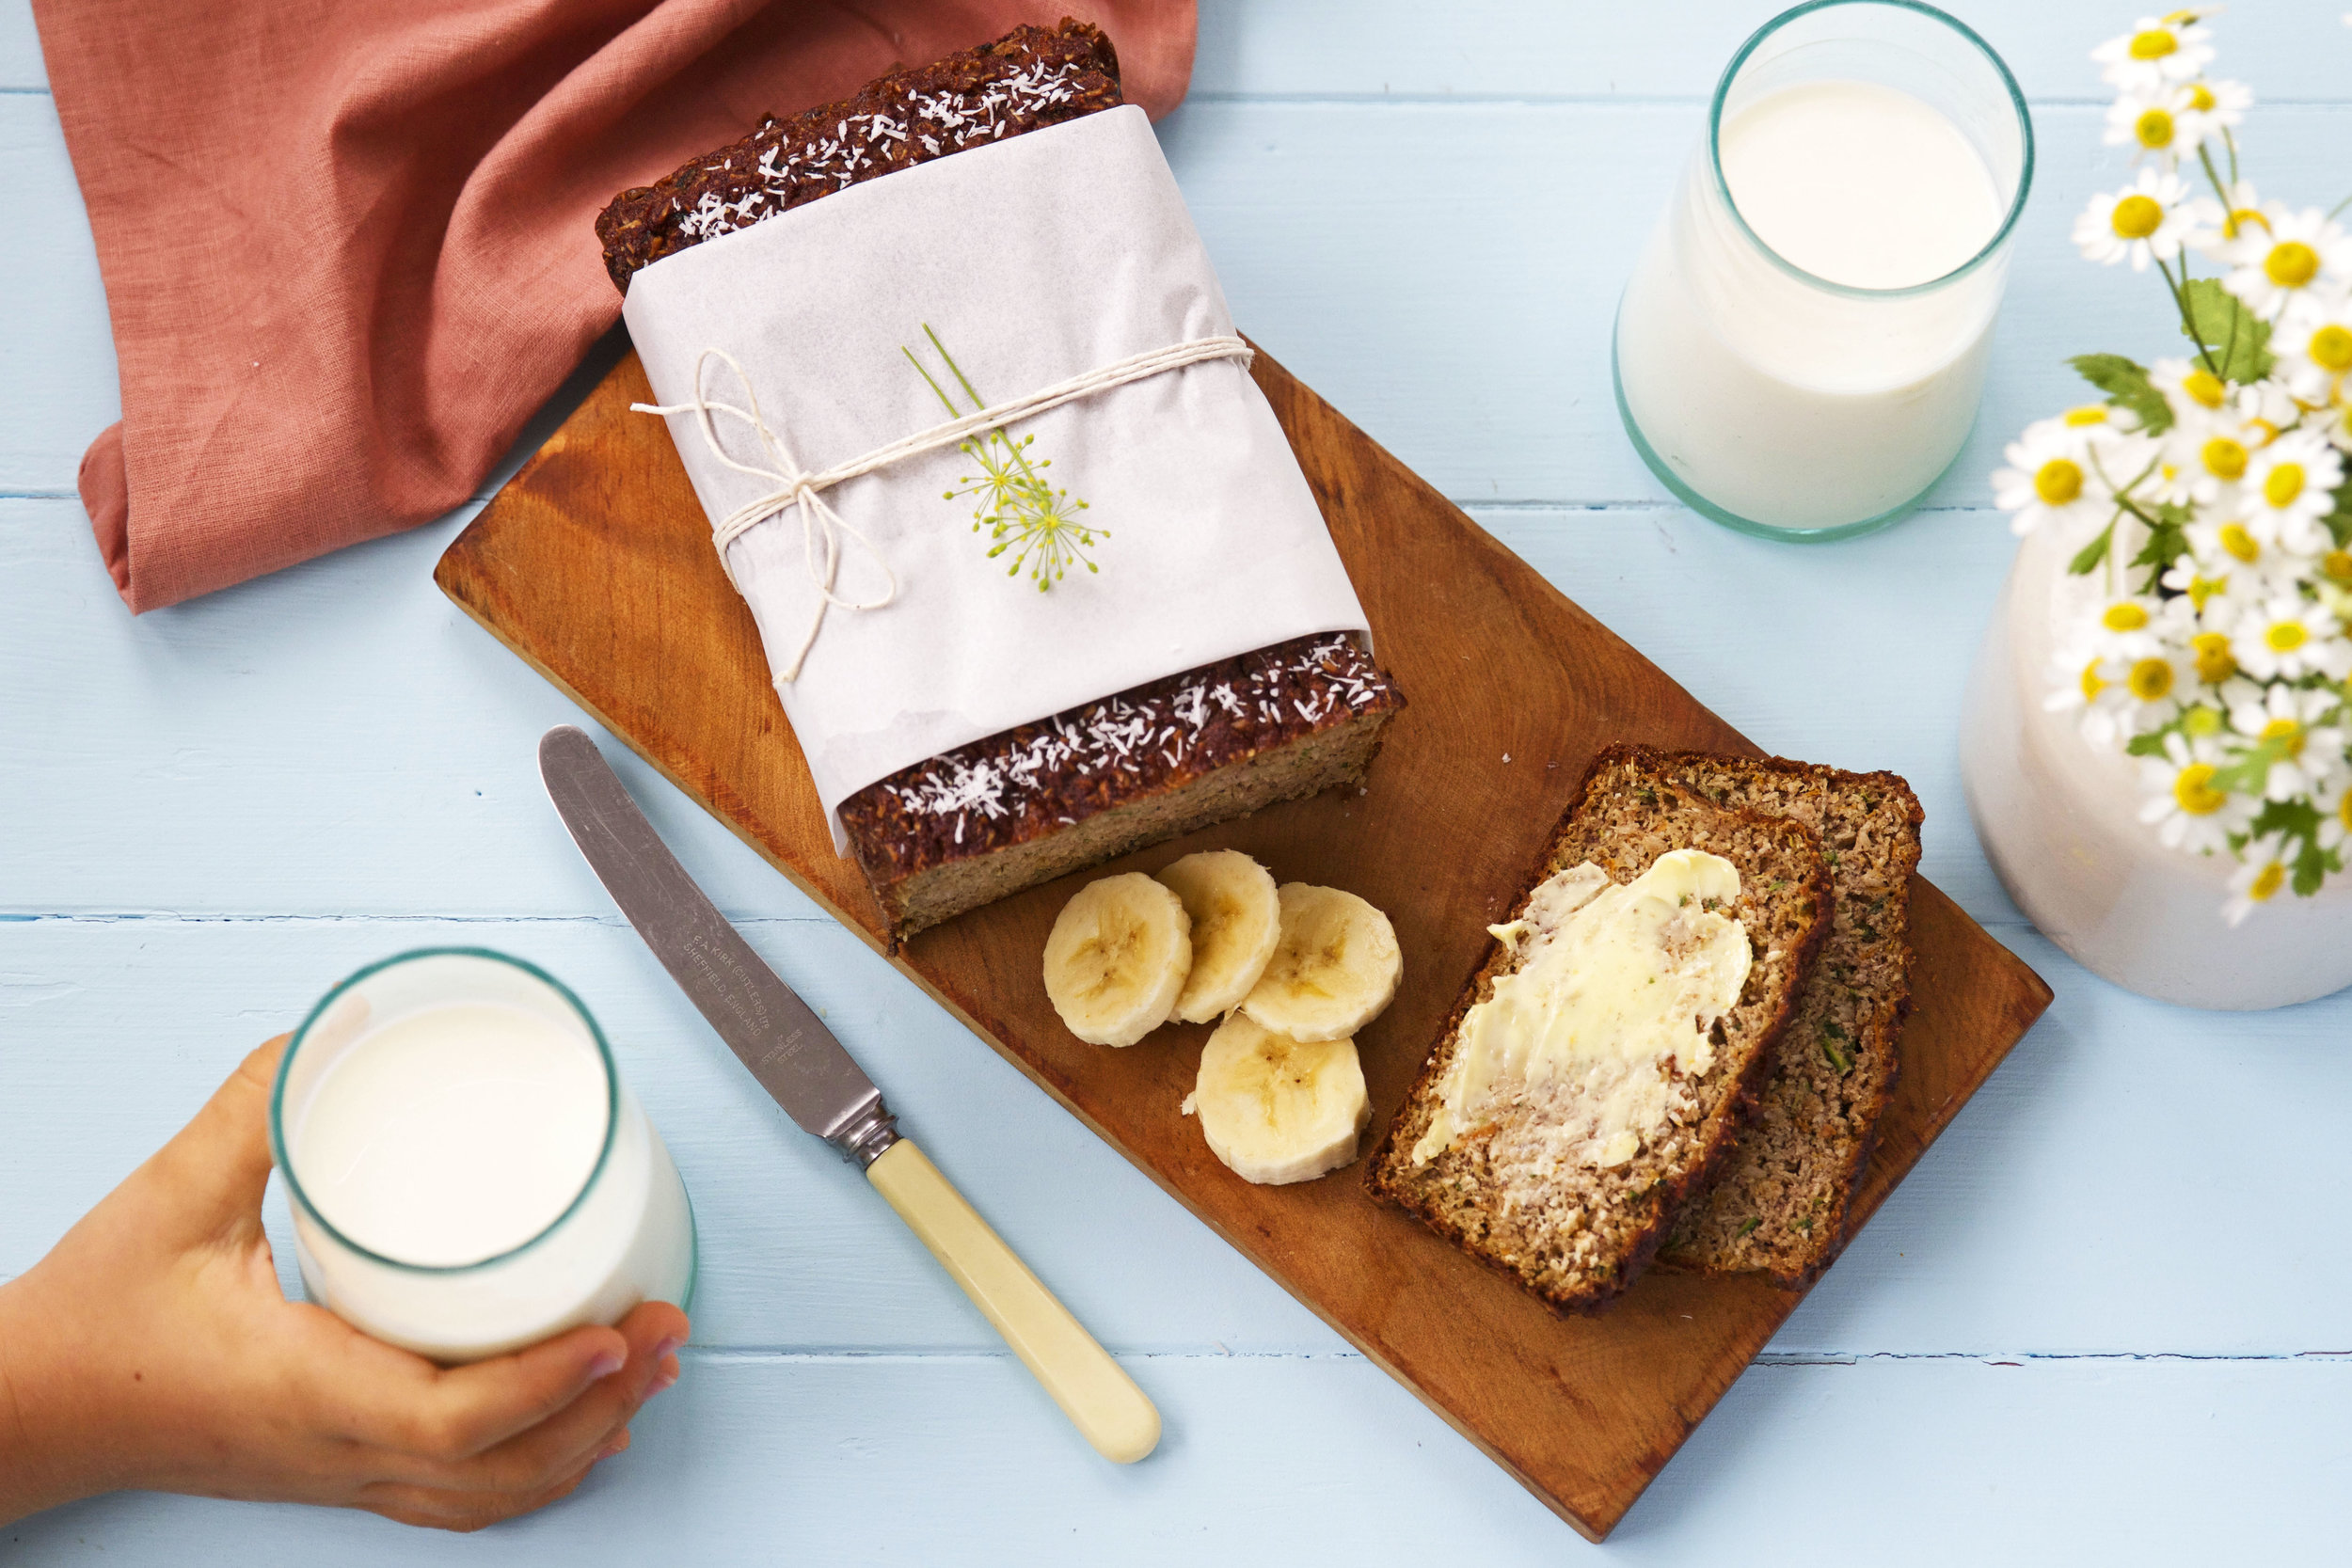 ALL GOOD_Back To School_Low Res_Zucchini carrot loaf4.jpg